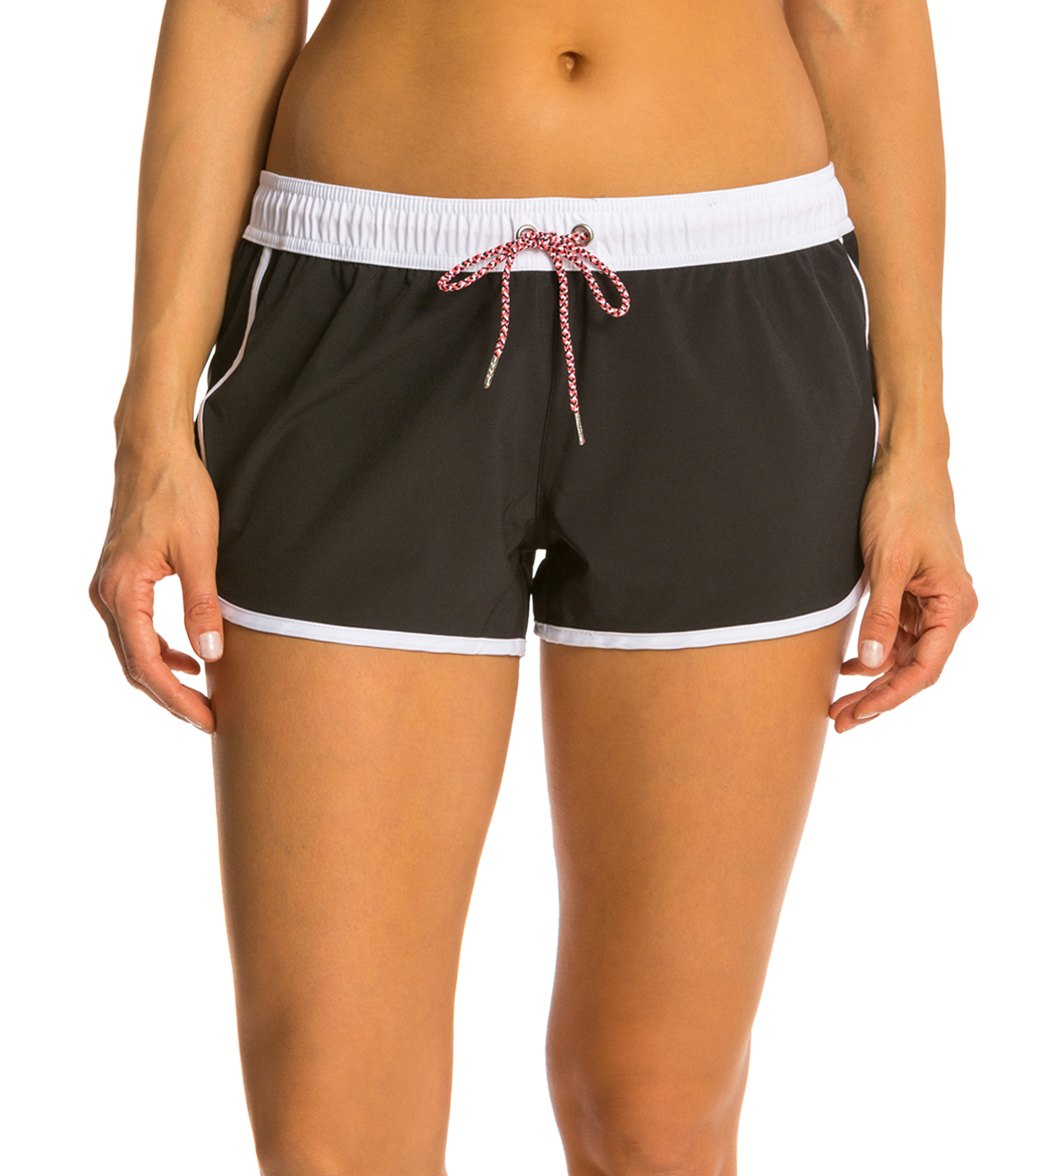 761c60cca3 Seafolly Women's Beach Runner Short Boardshort at SwimOutlet.com - Free  Shipping